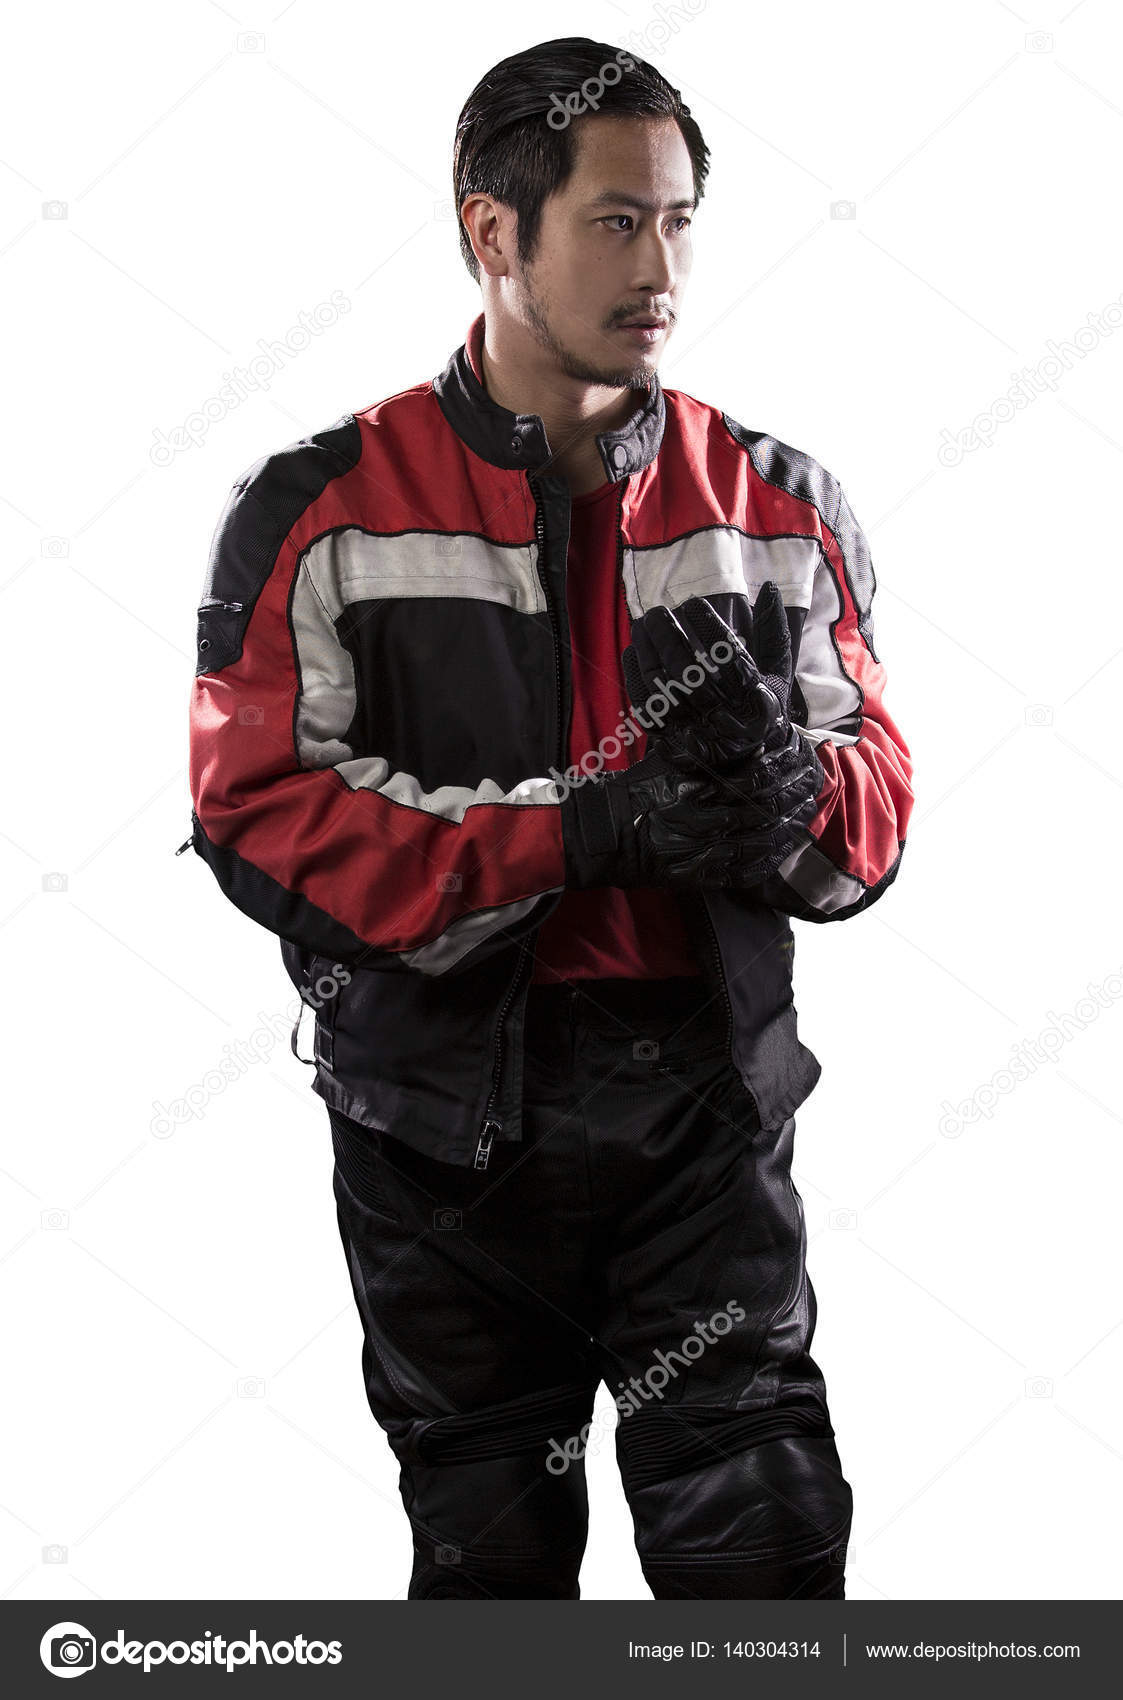 Race Car Driver Or Biker On A White Background Stock Photo Image By C Innovatedcaptures 140304314